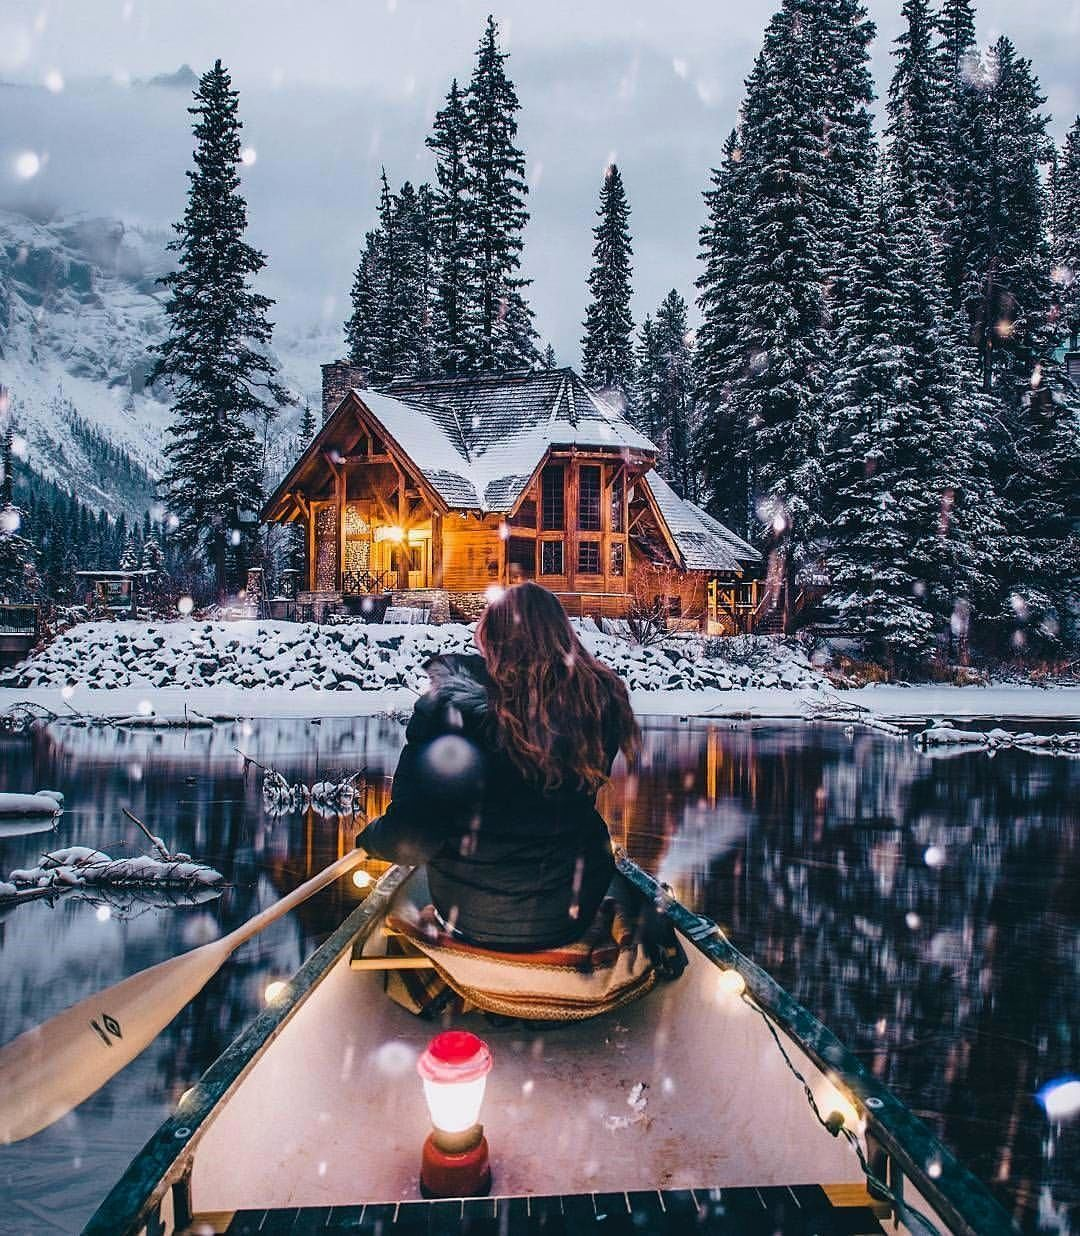 emerald lake lodge is a winters who s been to